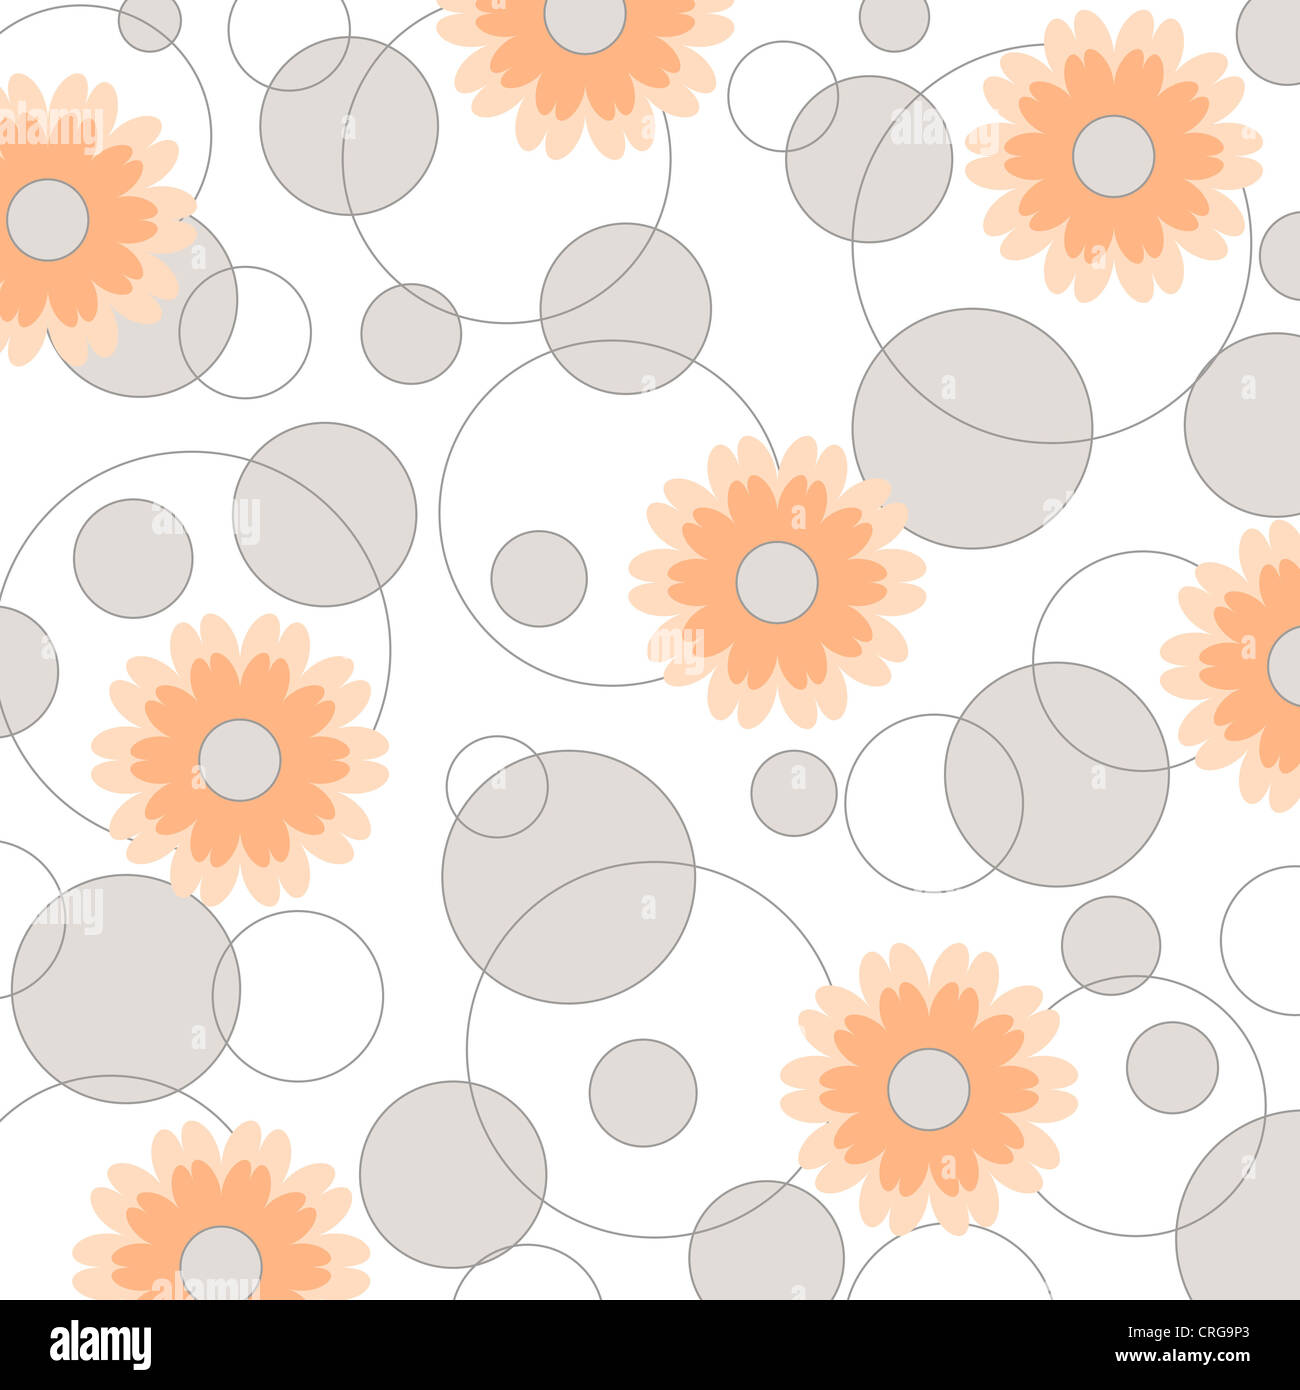 Floral and circles pattern on white Stock Photo